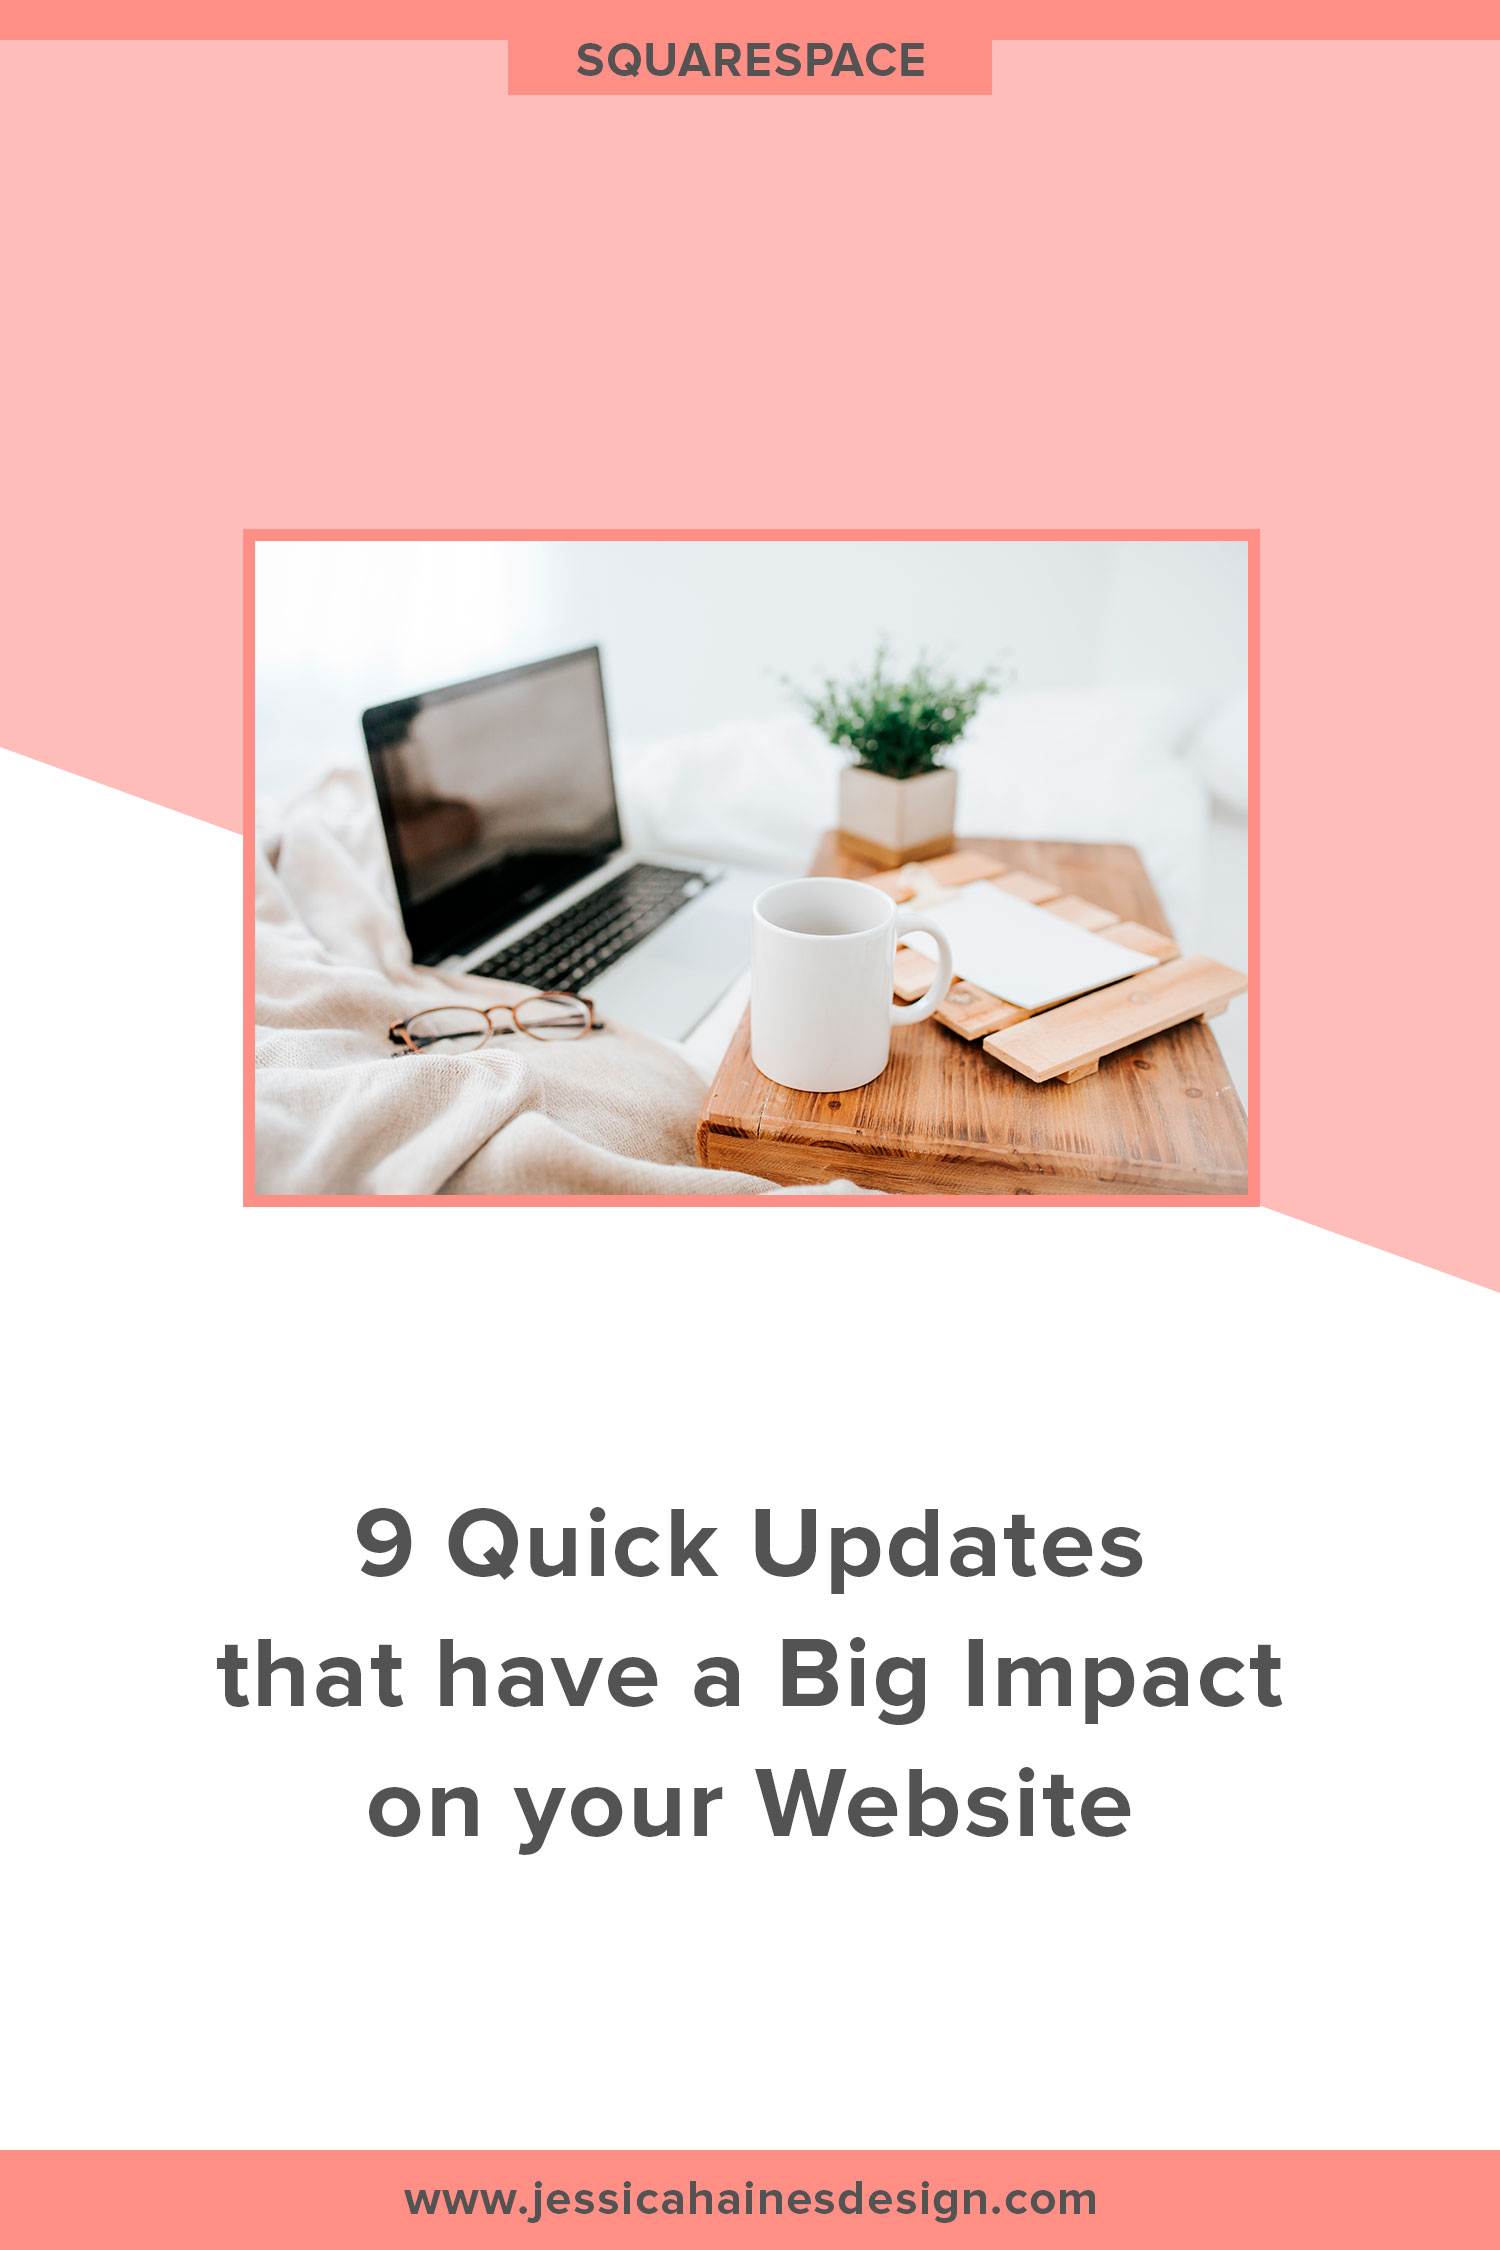 Our website has the potential to be a 24/7 sales person for our business. It should be beautiful and well-designed, but it should also work hard to get website visitors to take action, whether that is signing up for your email list, making a purchase or booking a call with you. These steps will help you make your website work harder for your business so you can really get the most out of it | www.jessicahainesdesign.com